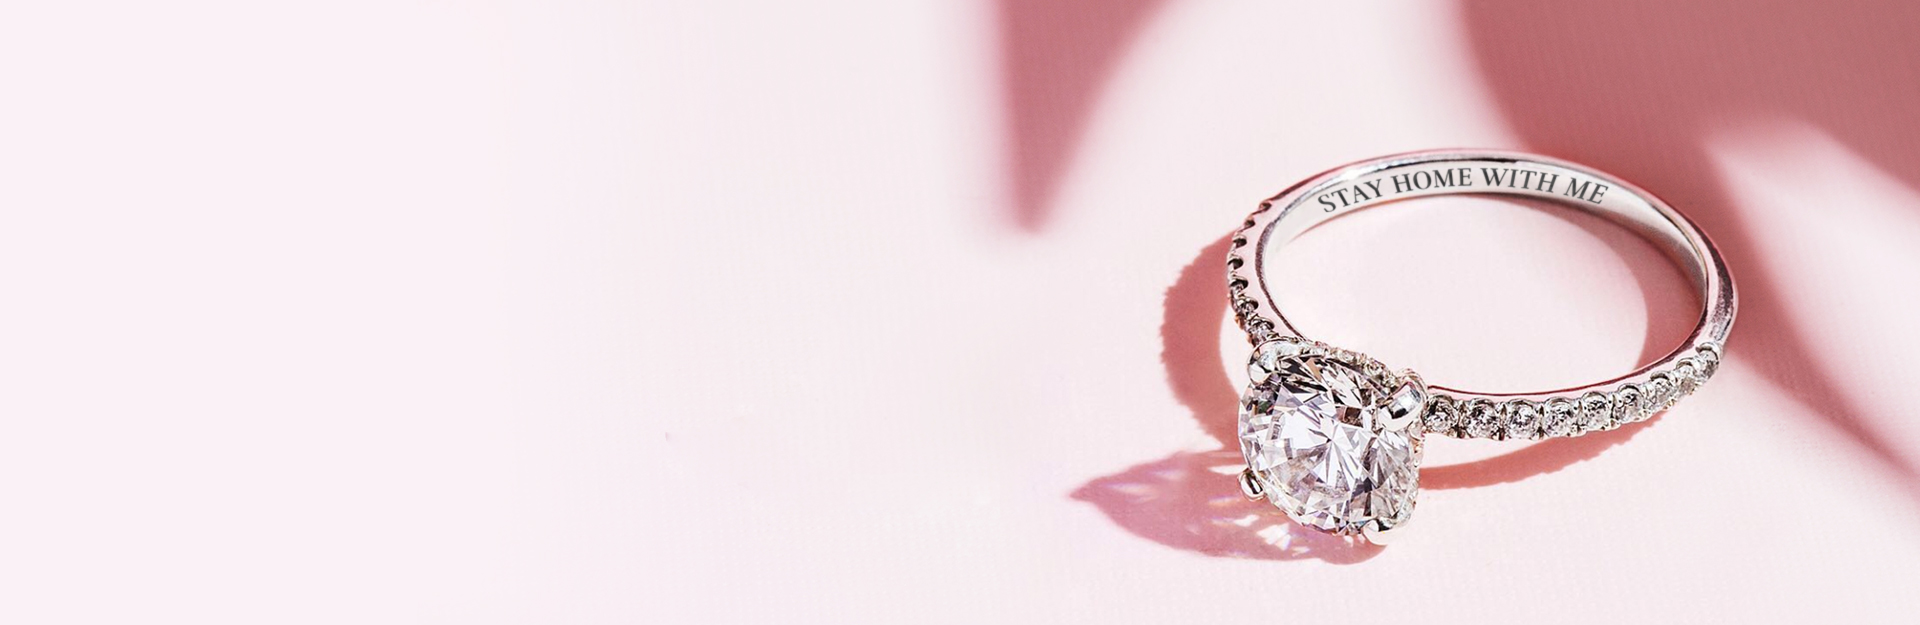 """Image of an engagement ring with an engraving that says """"Stay Home With Me"""""""